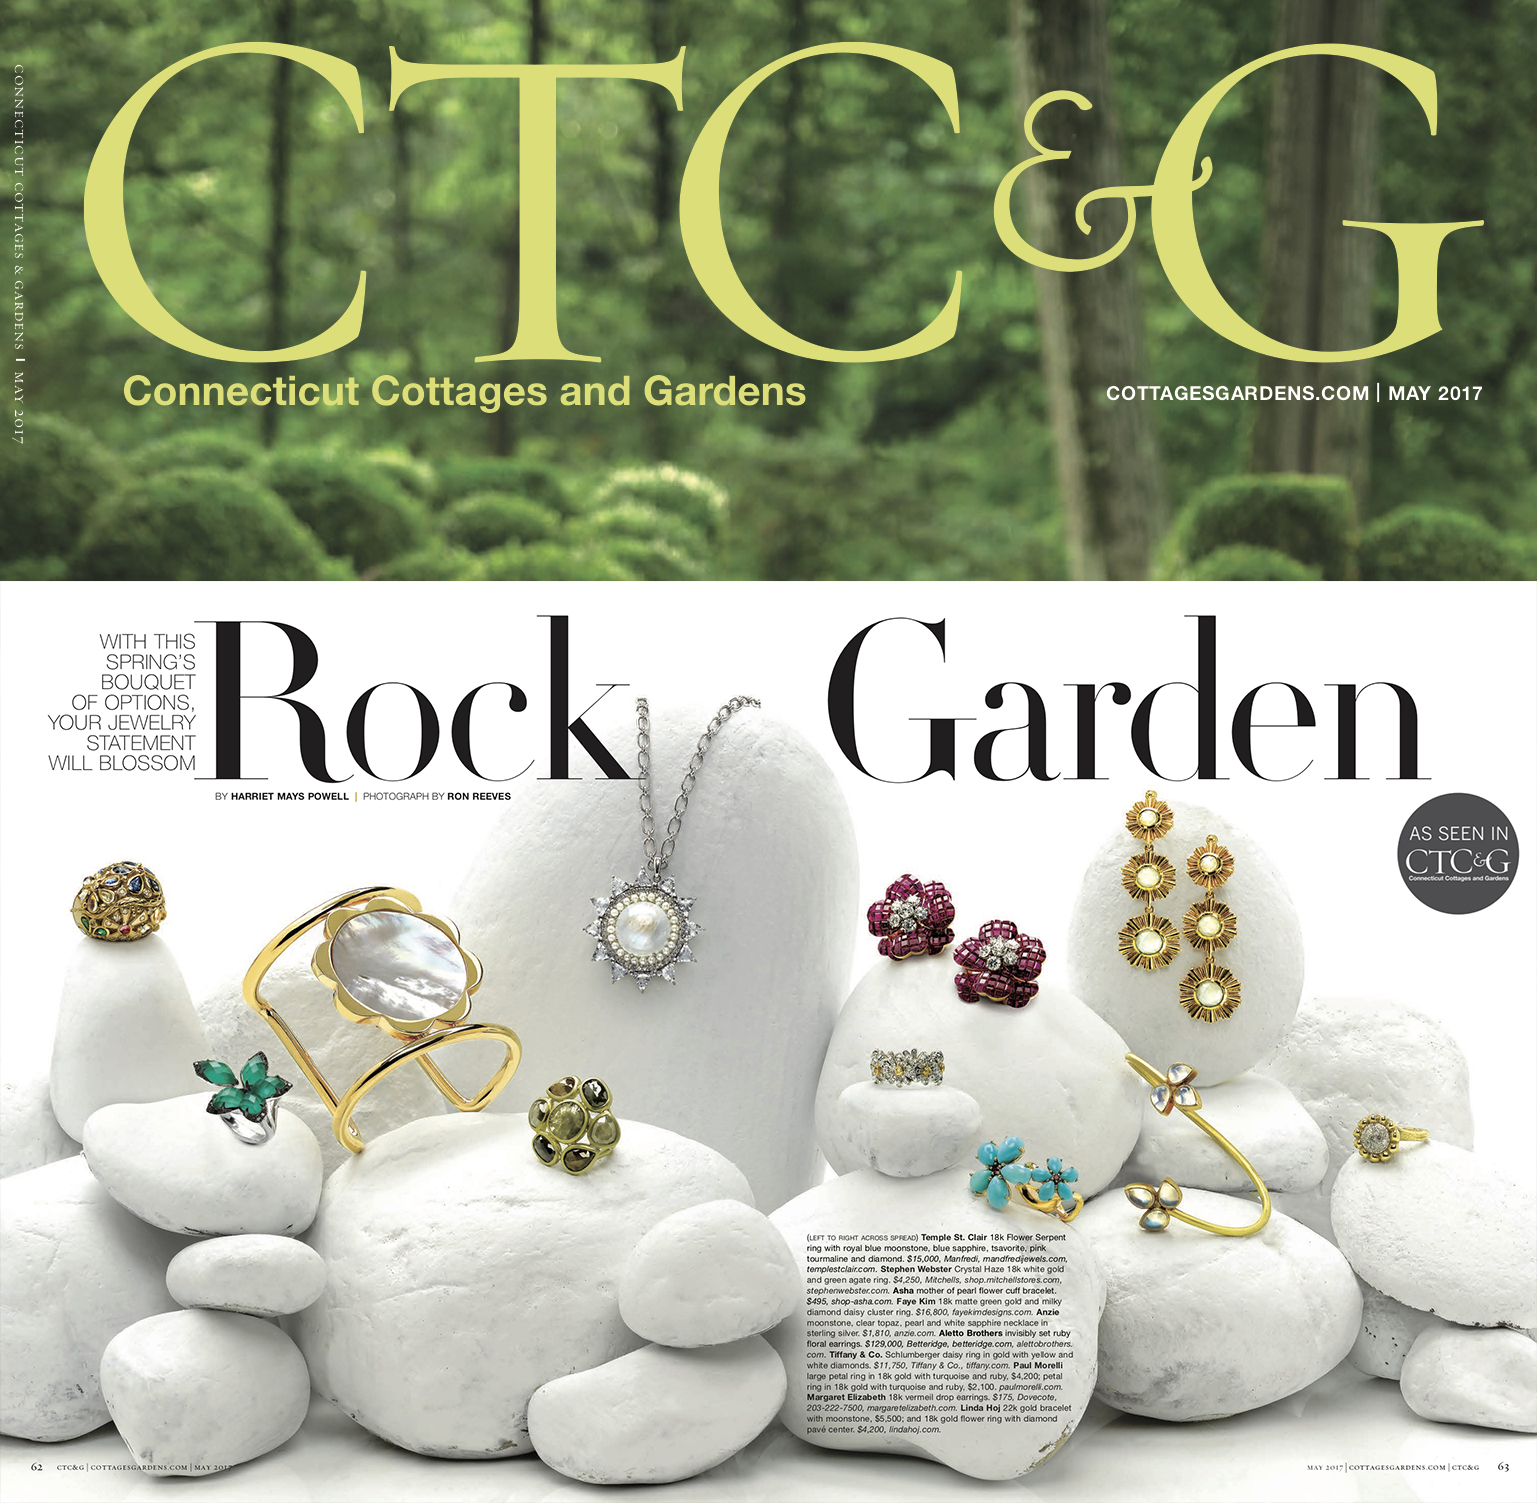 Connecticut Cottages and Gardens | May 2017 - Linda Hoj 22k gold bracelet with moonstone and 18k gold flower ring with diamond pavé center.